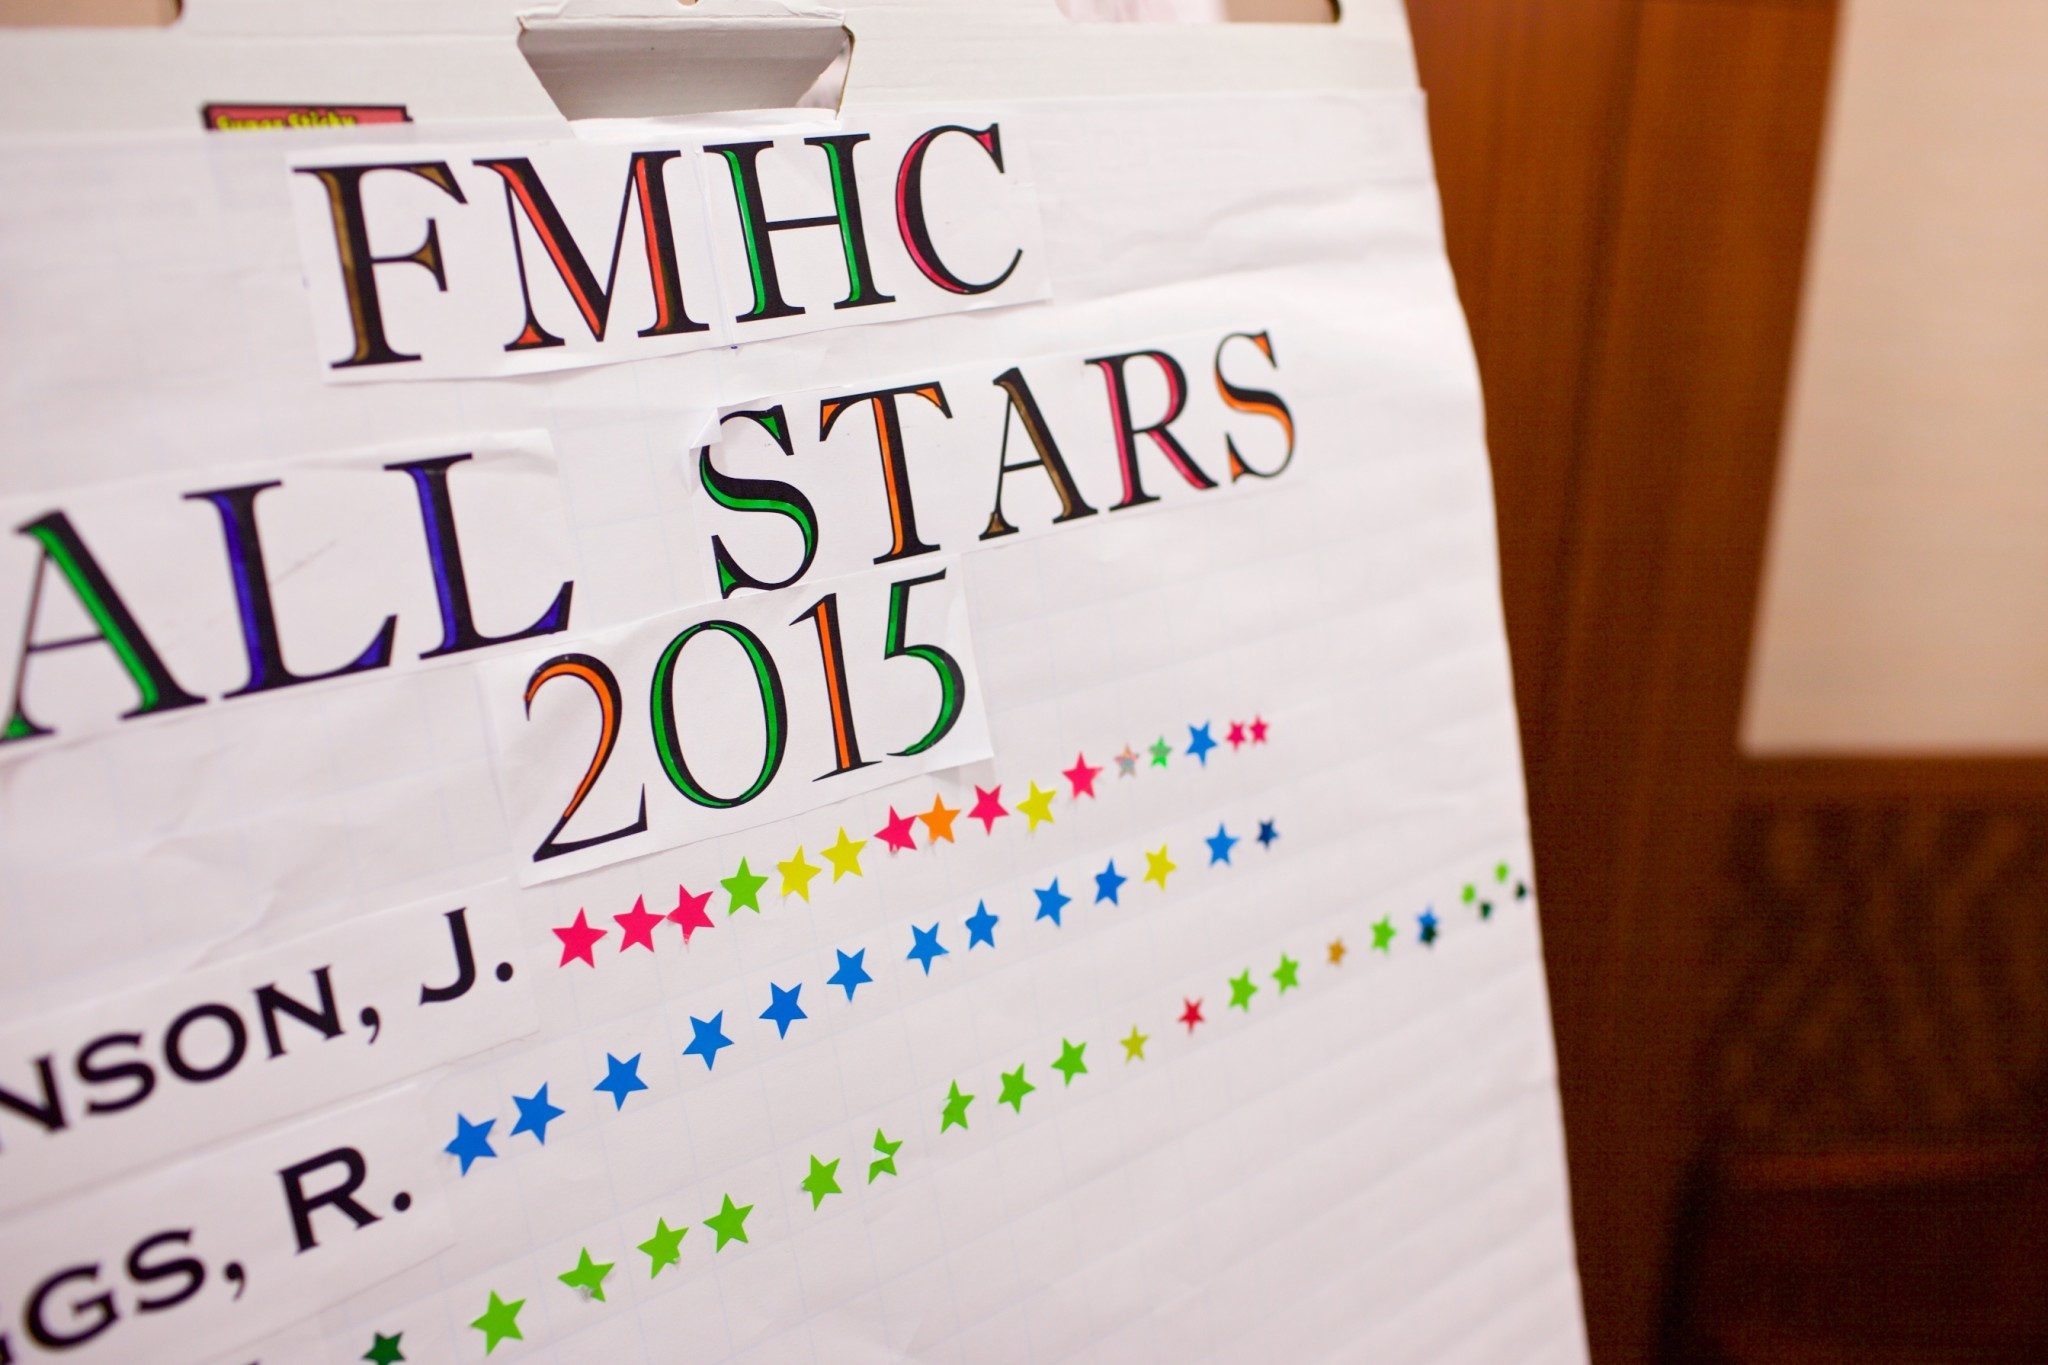 Fmhc All Stars 2015 Poster